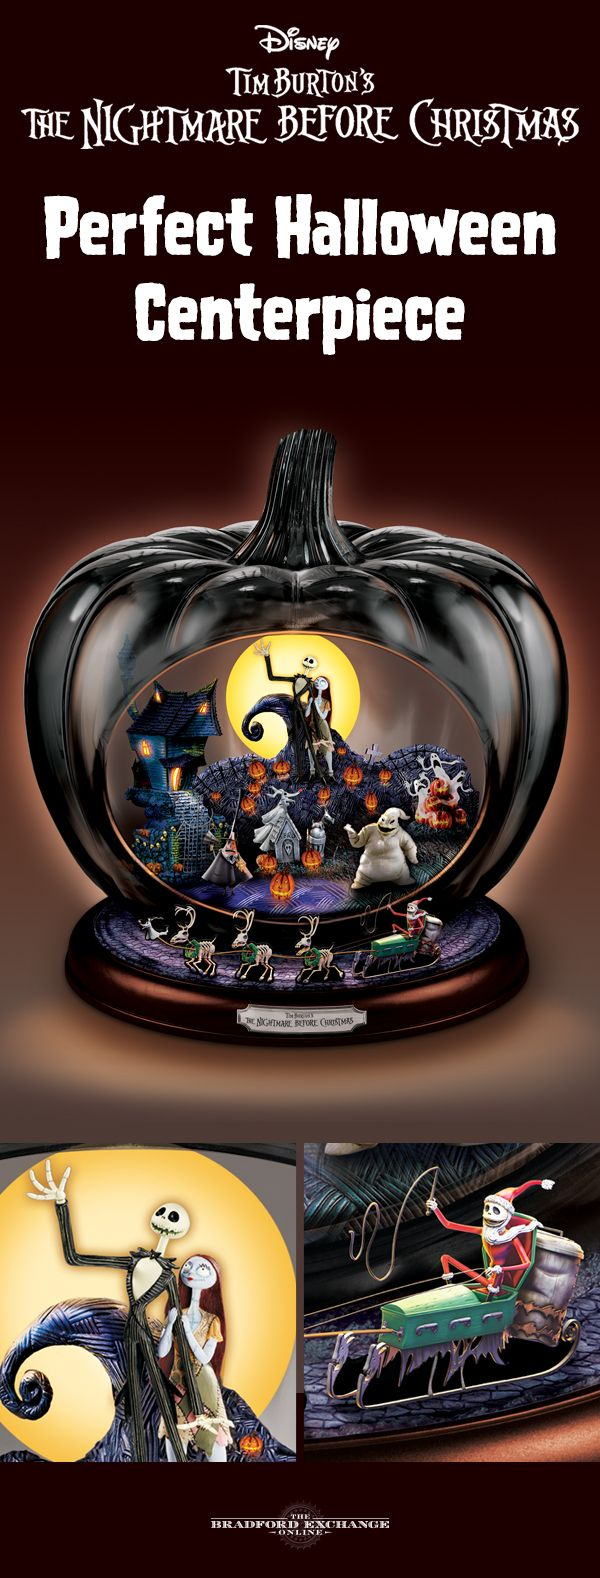 celebrate a movie masterpiece this halloween when you ghoulishly grace your home with the first